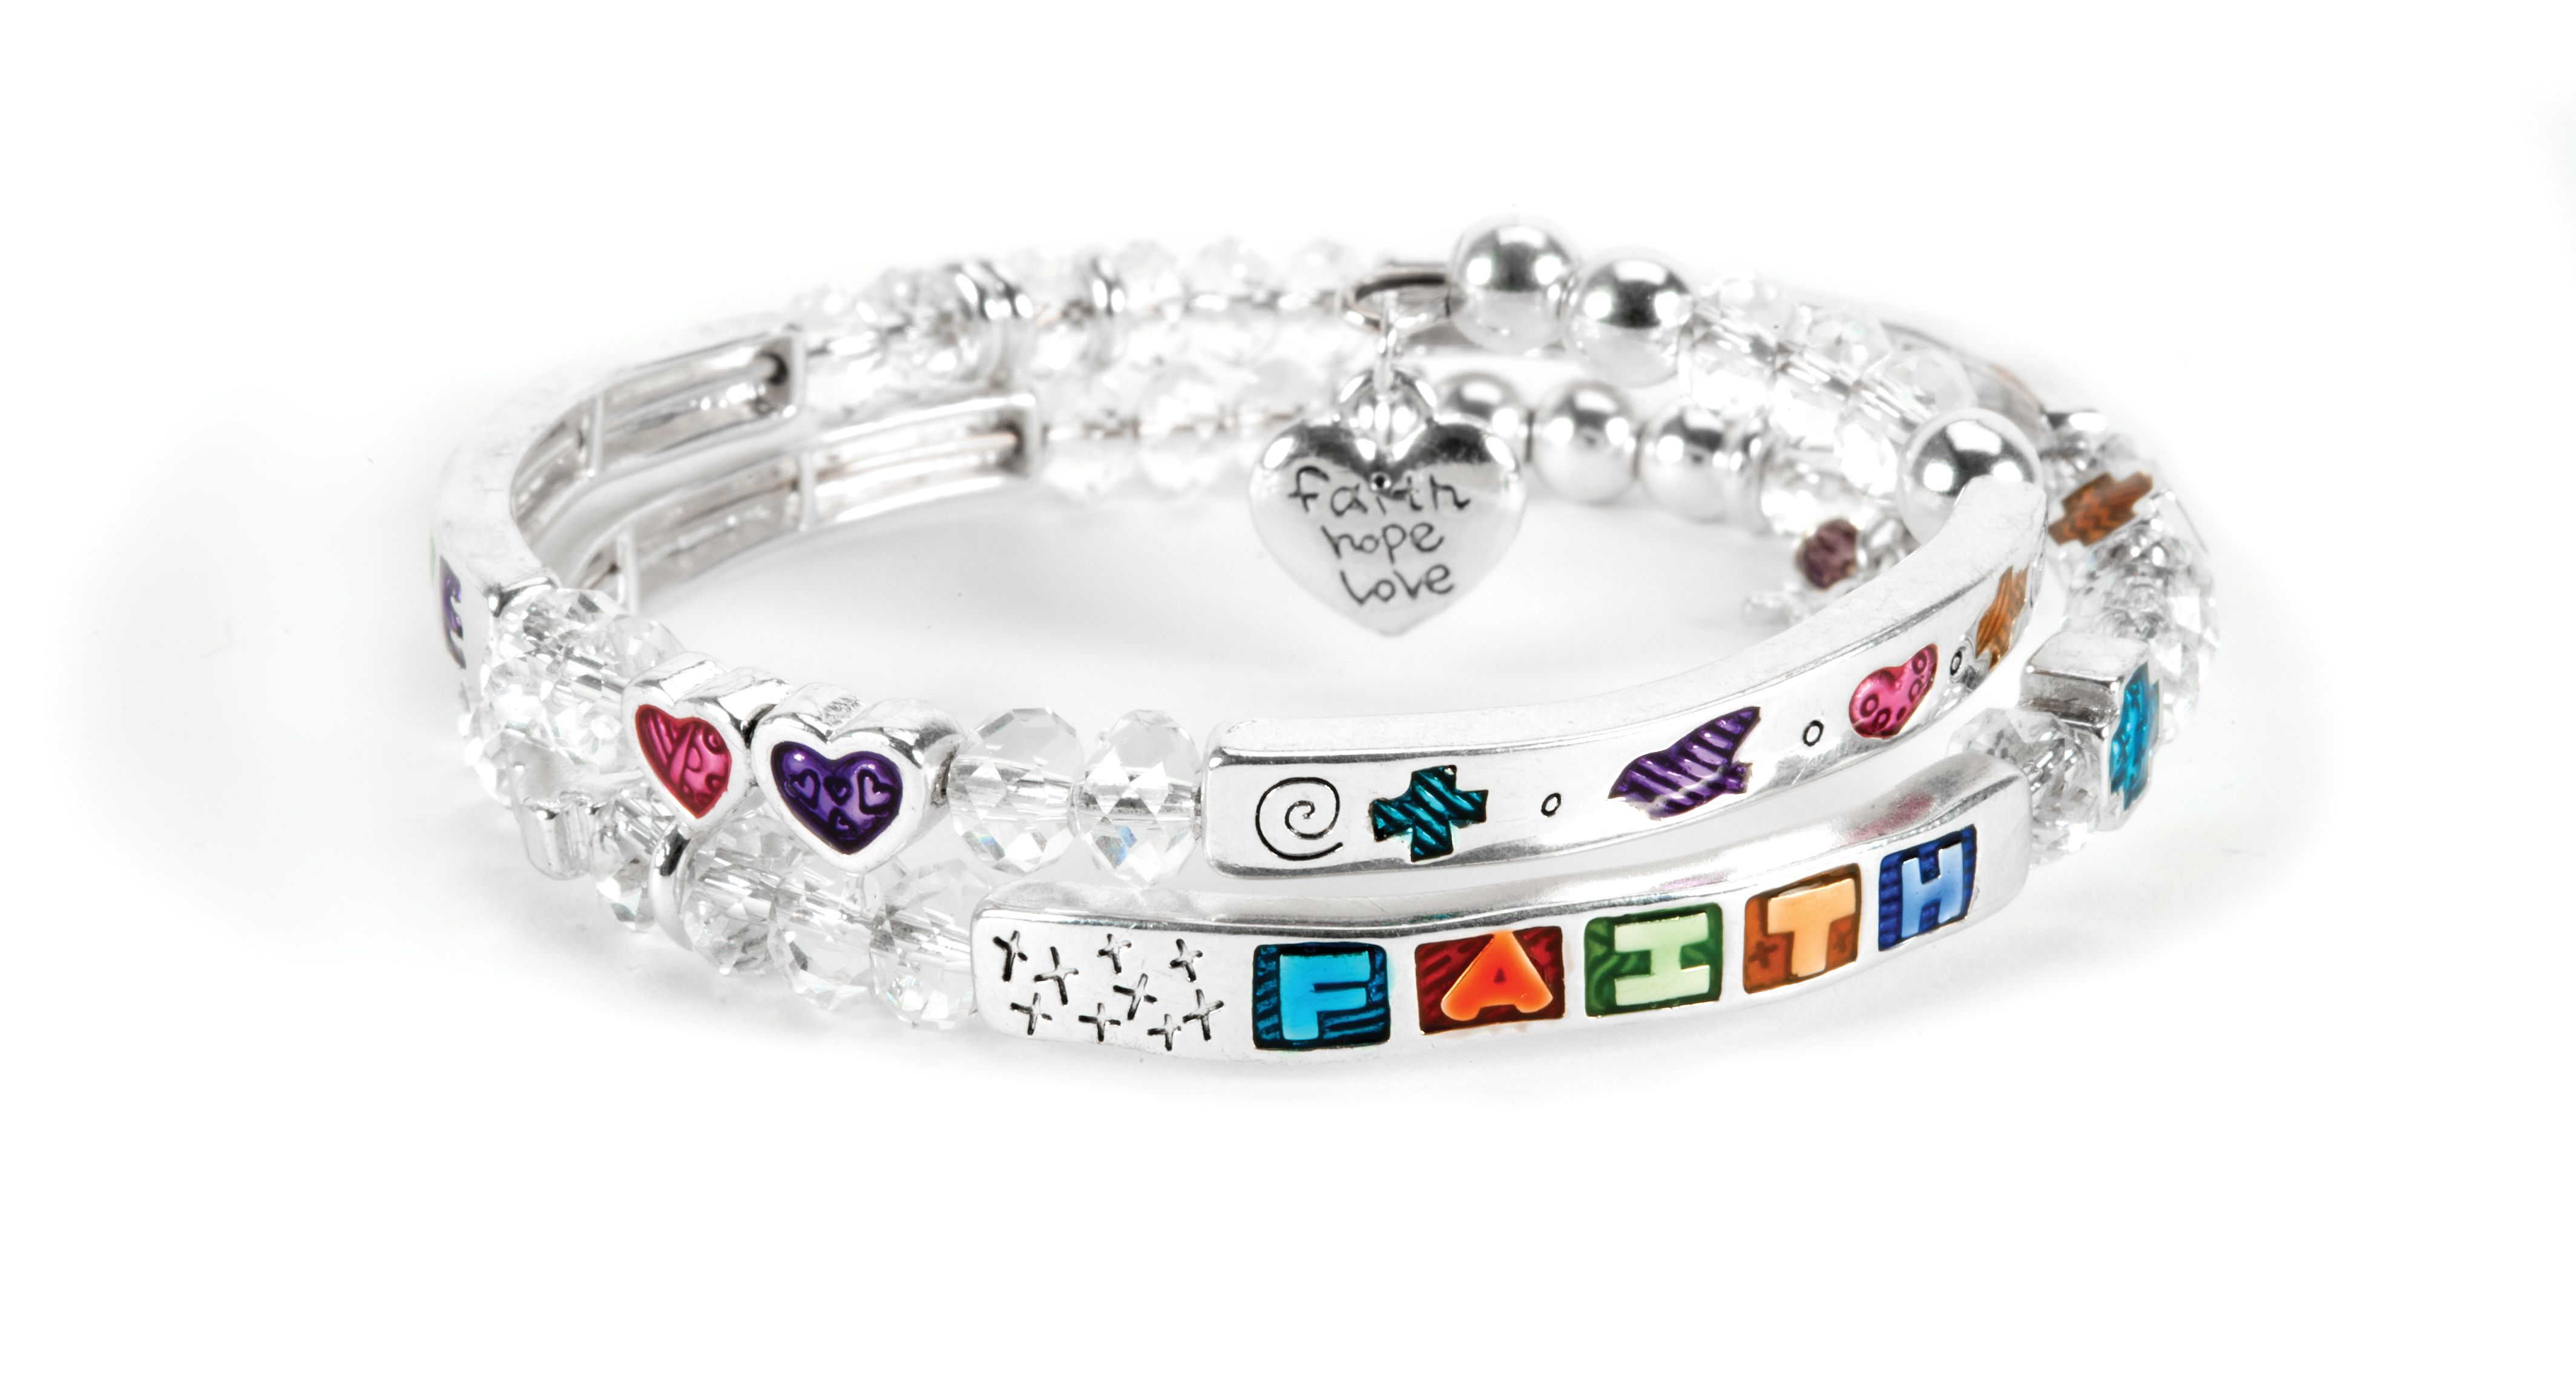 Just Jewelry is proudly offering the Faith, Hope, Love bracelet in support of the Plumpy'Nut® initiative. For each $18 bracelet sold, Just Jewelry donates the funds necessary to provide two Plumpy'Nut® treatments to a malnourished child.